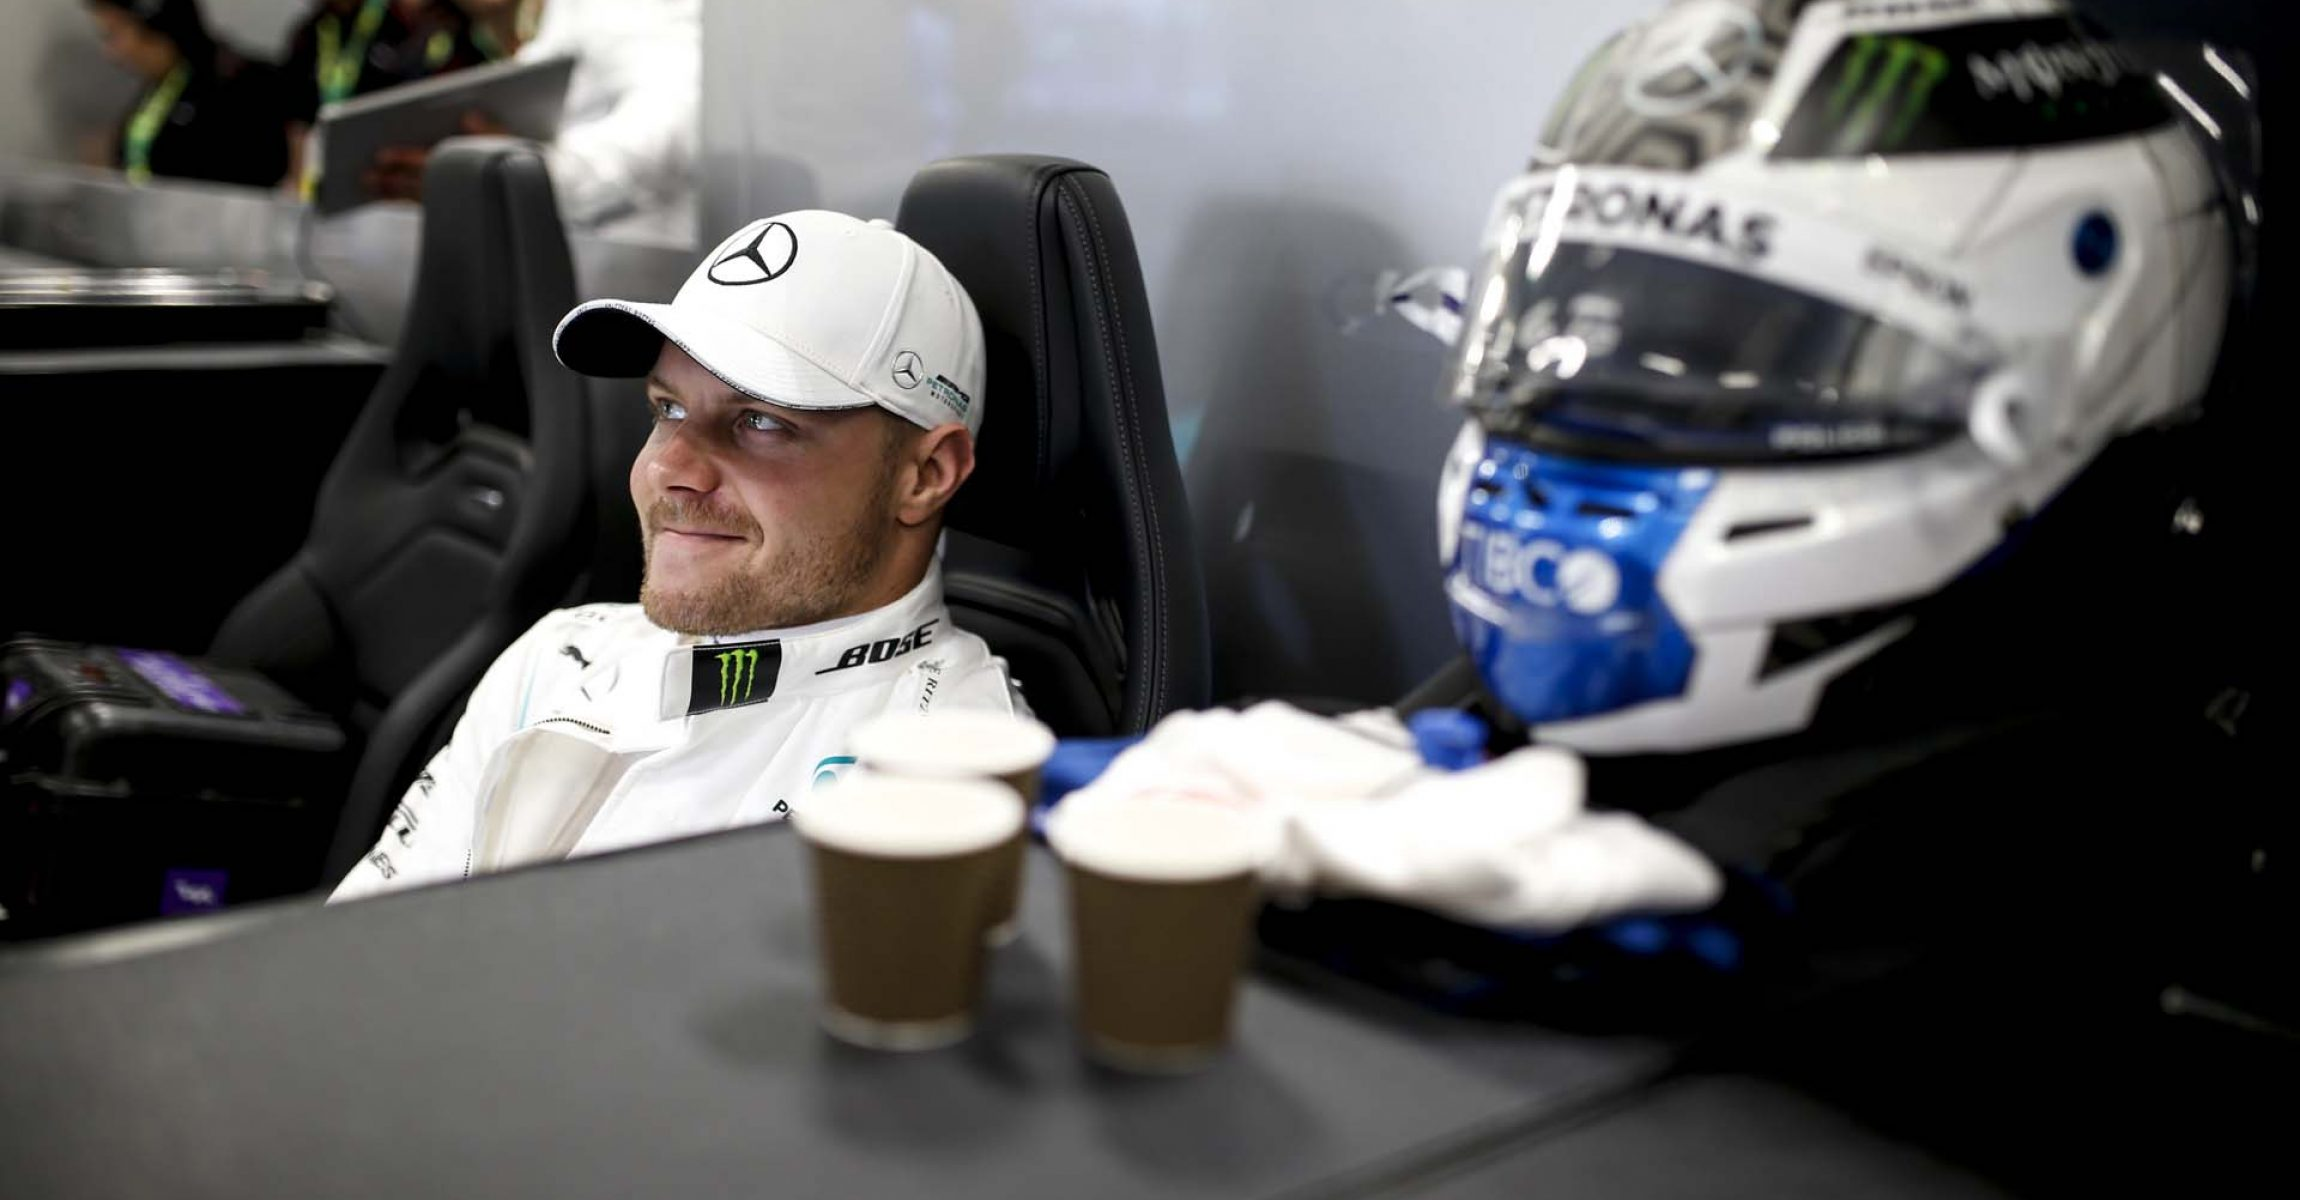 2019 Brazilian Grand Prix, Friday - Wolfgang Wilhelm Valtteri Bottas Mercedes